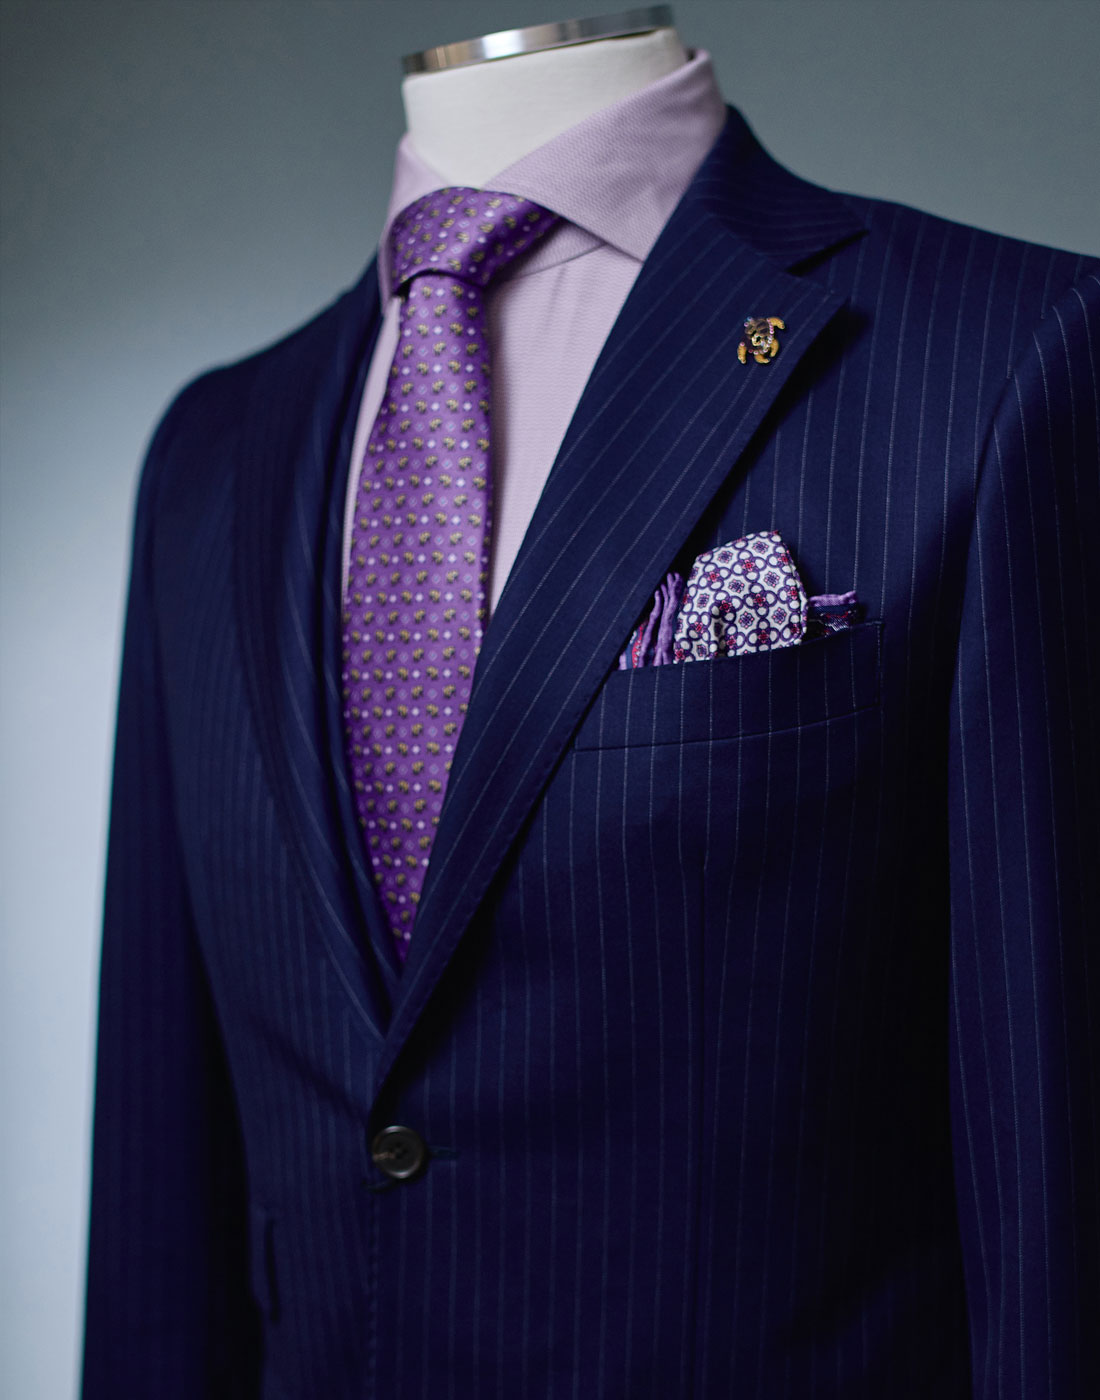 Men's pinstripe bespoke suit jacket